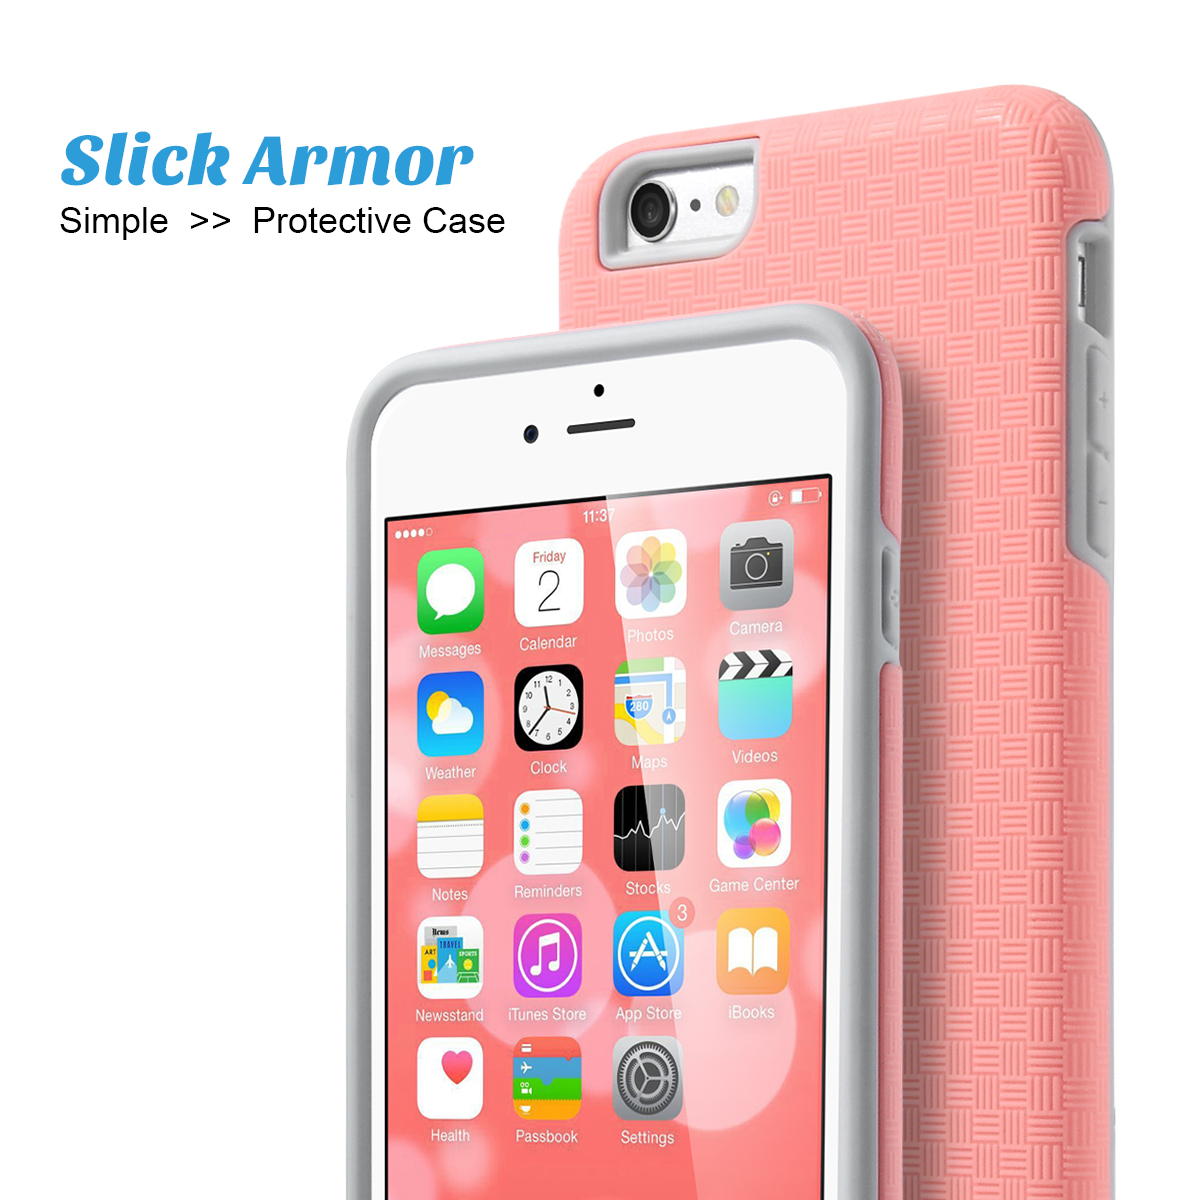 Iphone 6s Plus Case 5 5 Inch Iphone 6 Plus Case Ulak Iphone 6s Plus Case 5 5 Inch Phone 6 Plus Case Slick Armor Hybrid Hard Cover Case Walmart Com Walmart Com